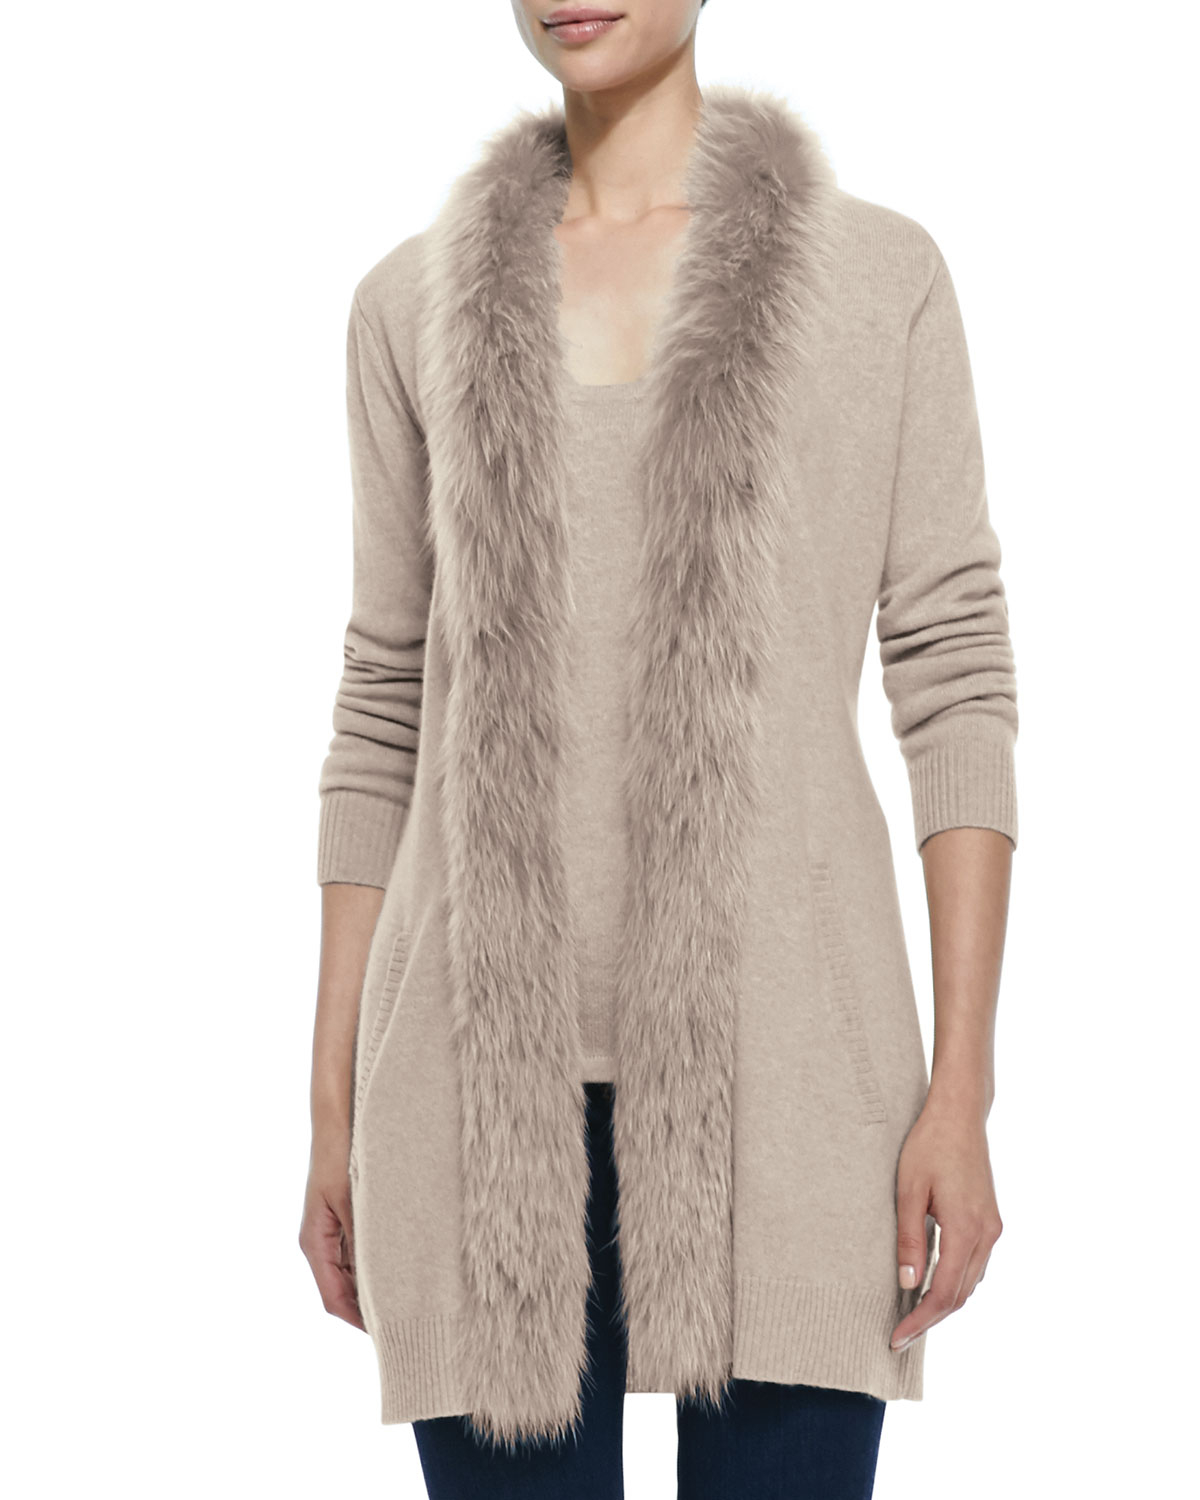 Sofia cashmere Fur-Trimmed Cashmere Cardigan in Natural | Lyst